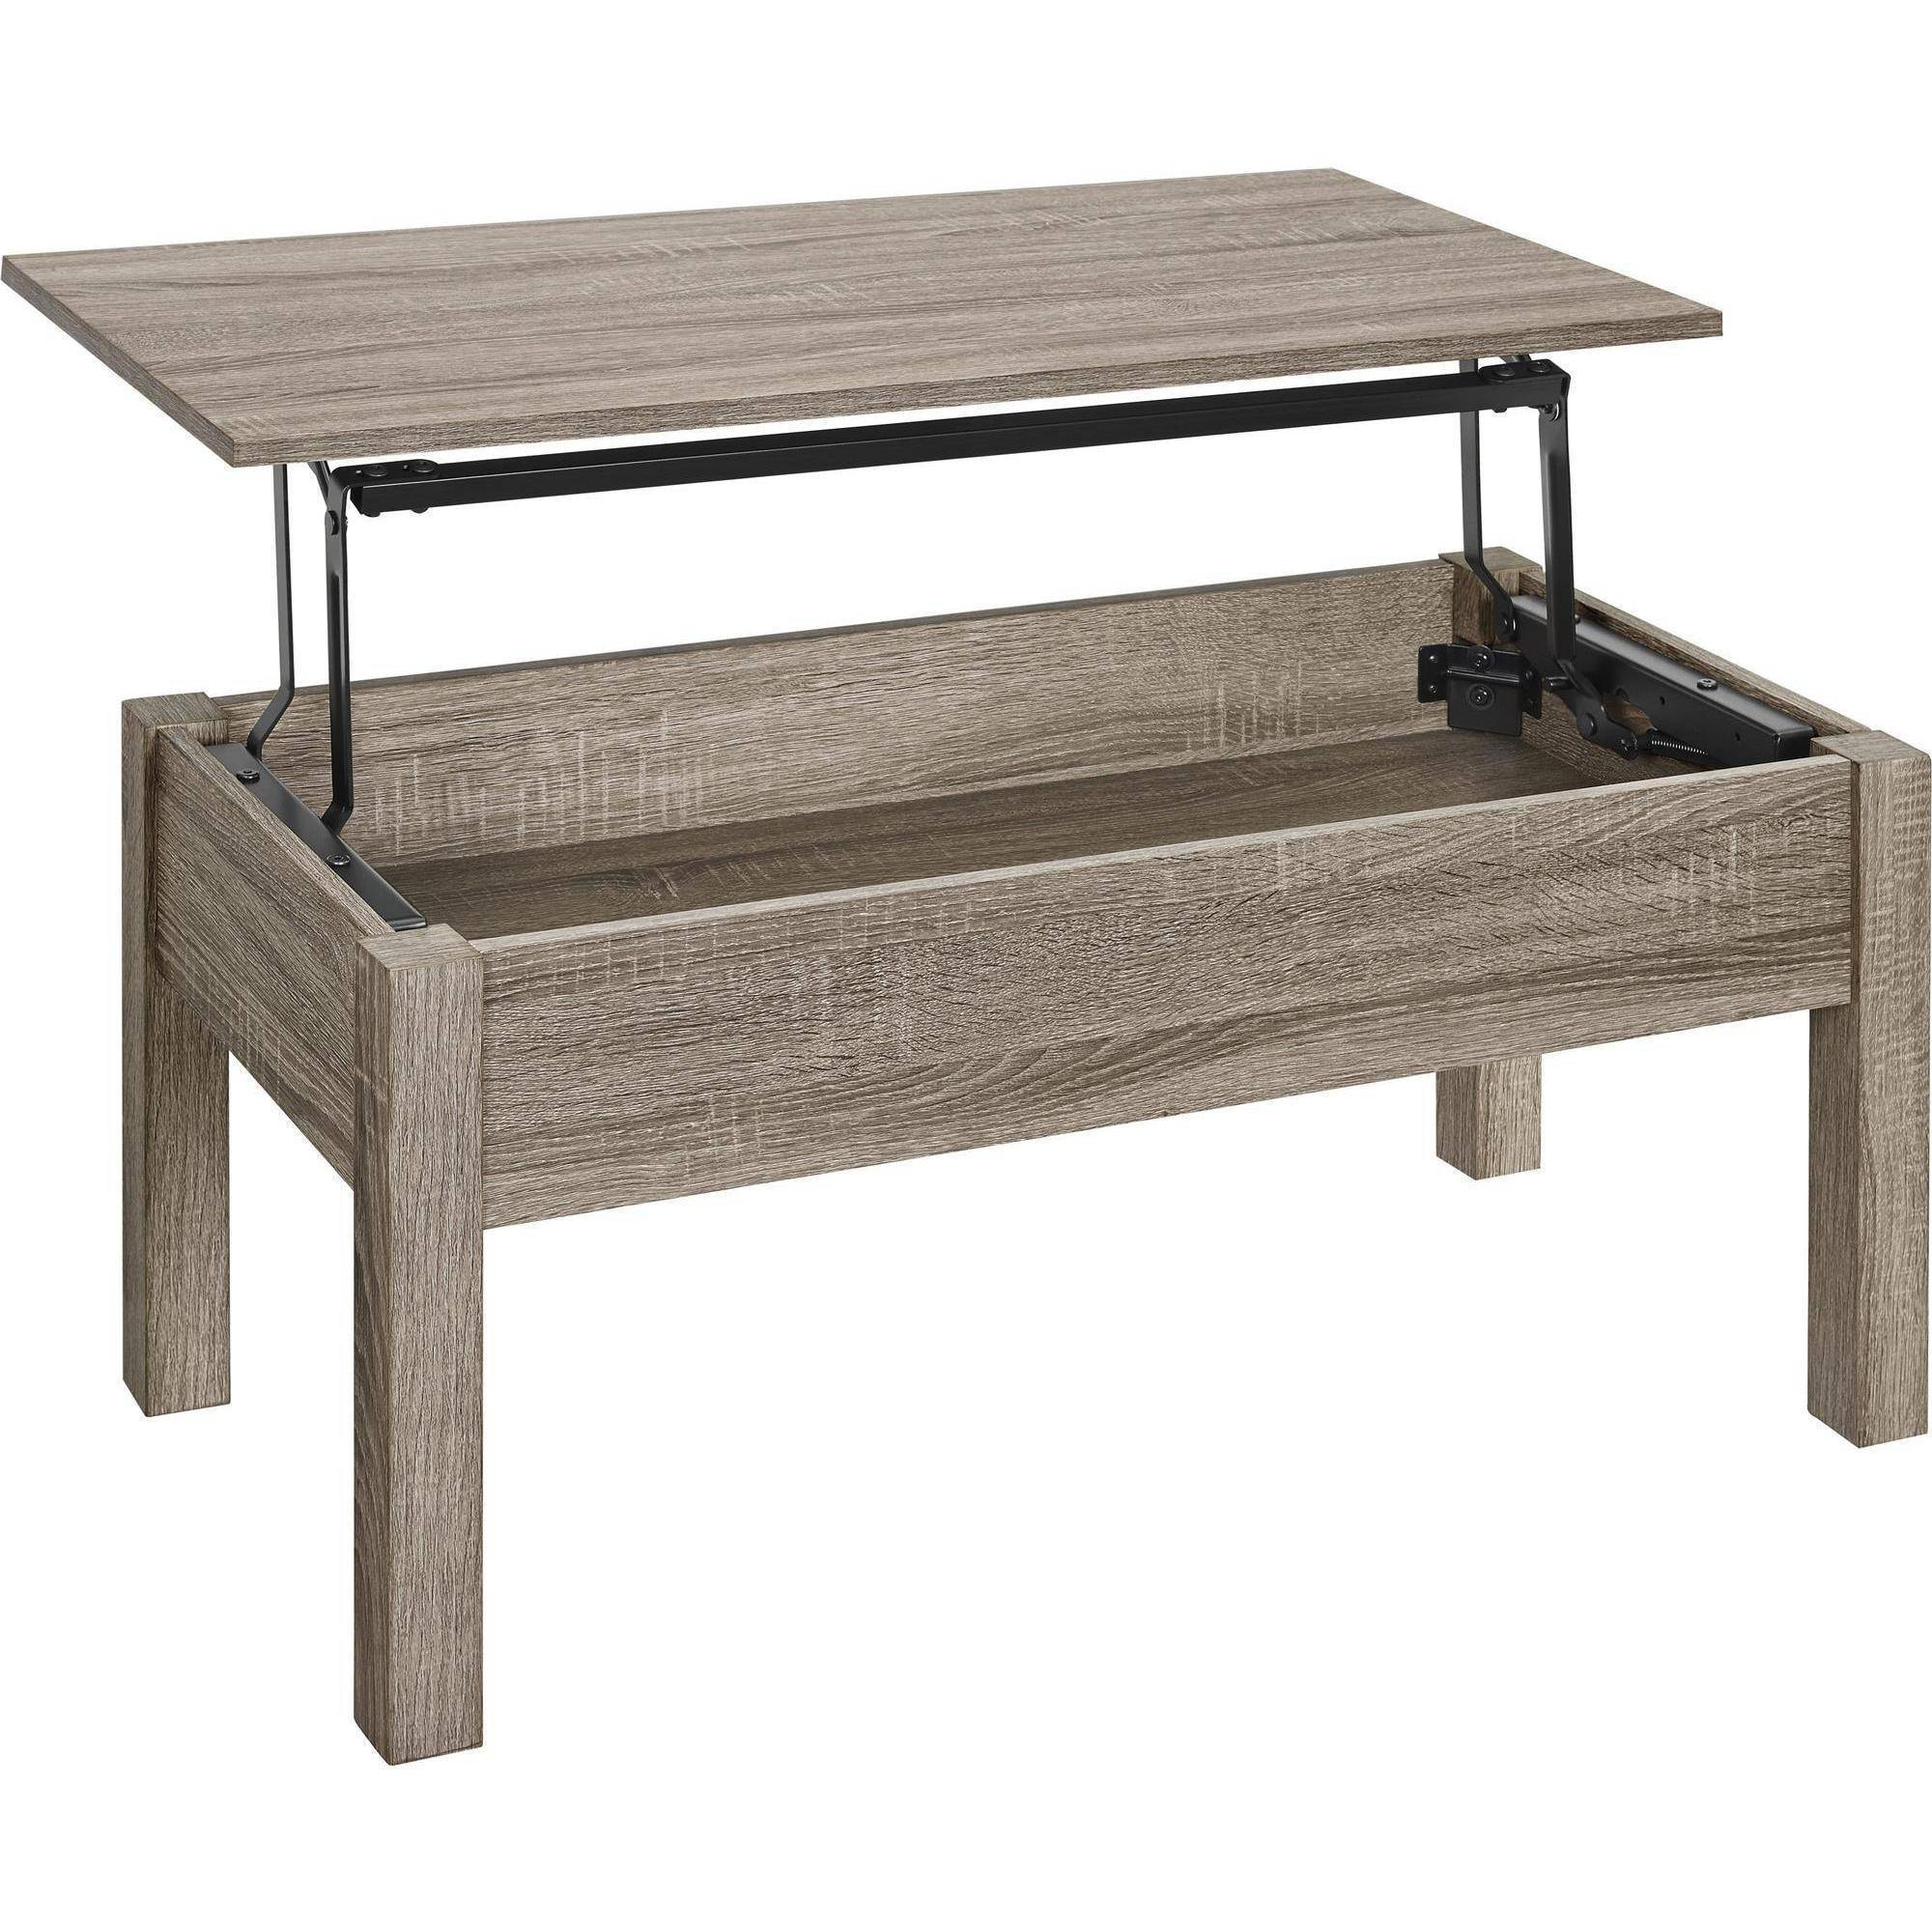 Mainstays Lift-Top Coffee Table, Multiple Colors - Walmart intended for Top Lifting Coffee Tables (Image 21 of 30)